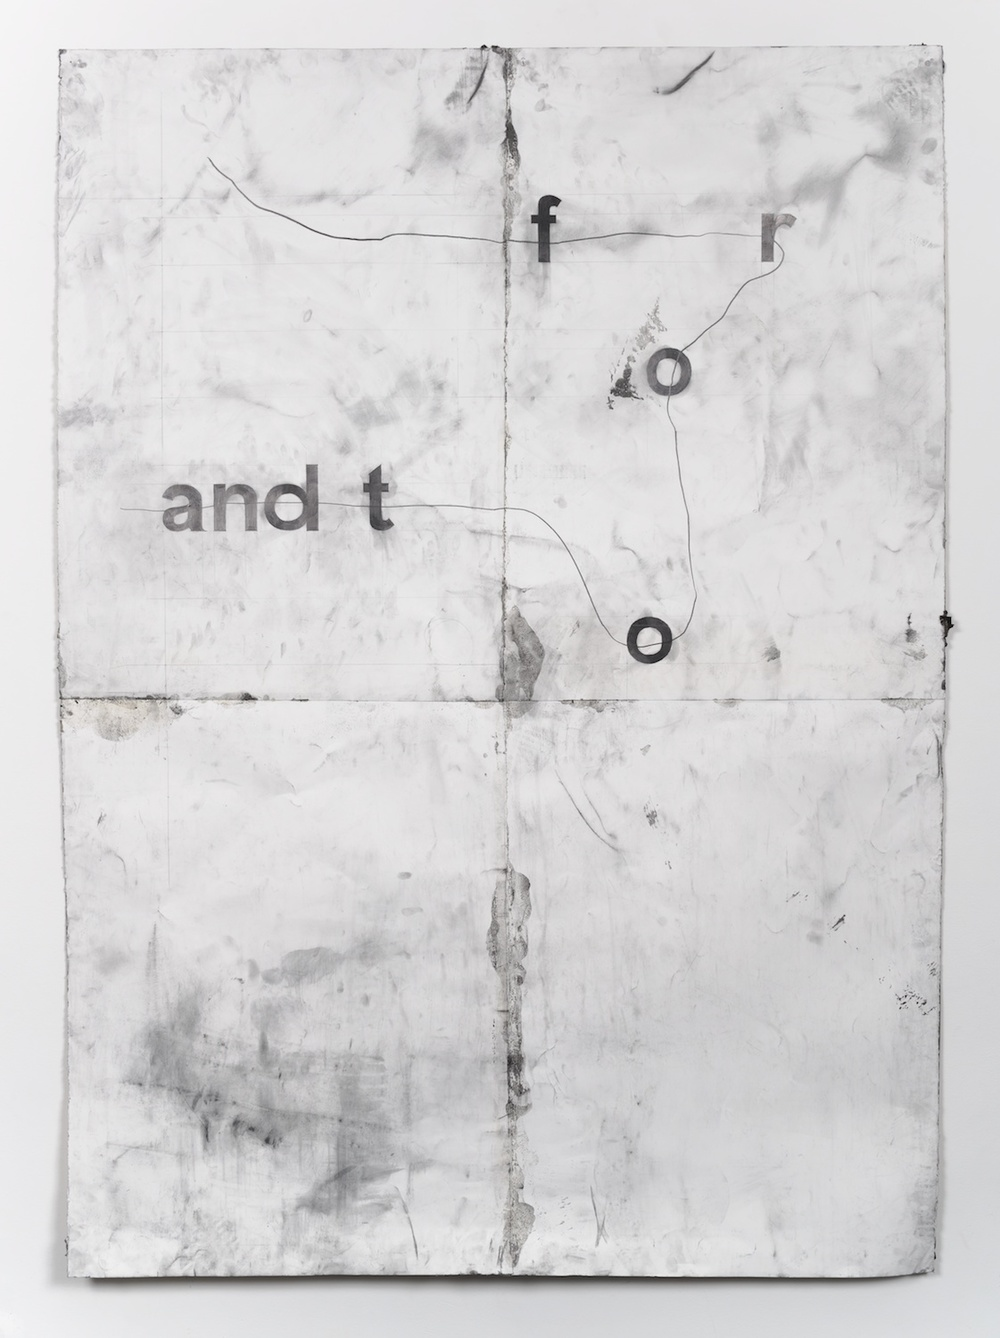 Tony Lewis  to and fro  2014 Pencil, graphite powder, and tape on paper 84h x 60w in TL122